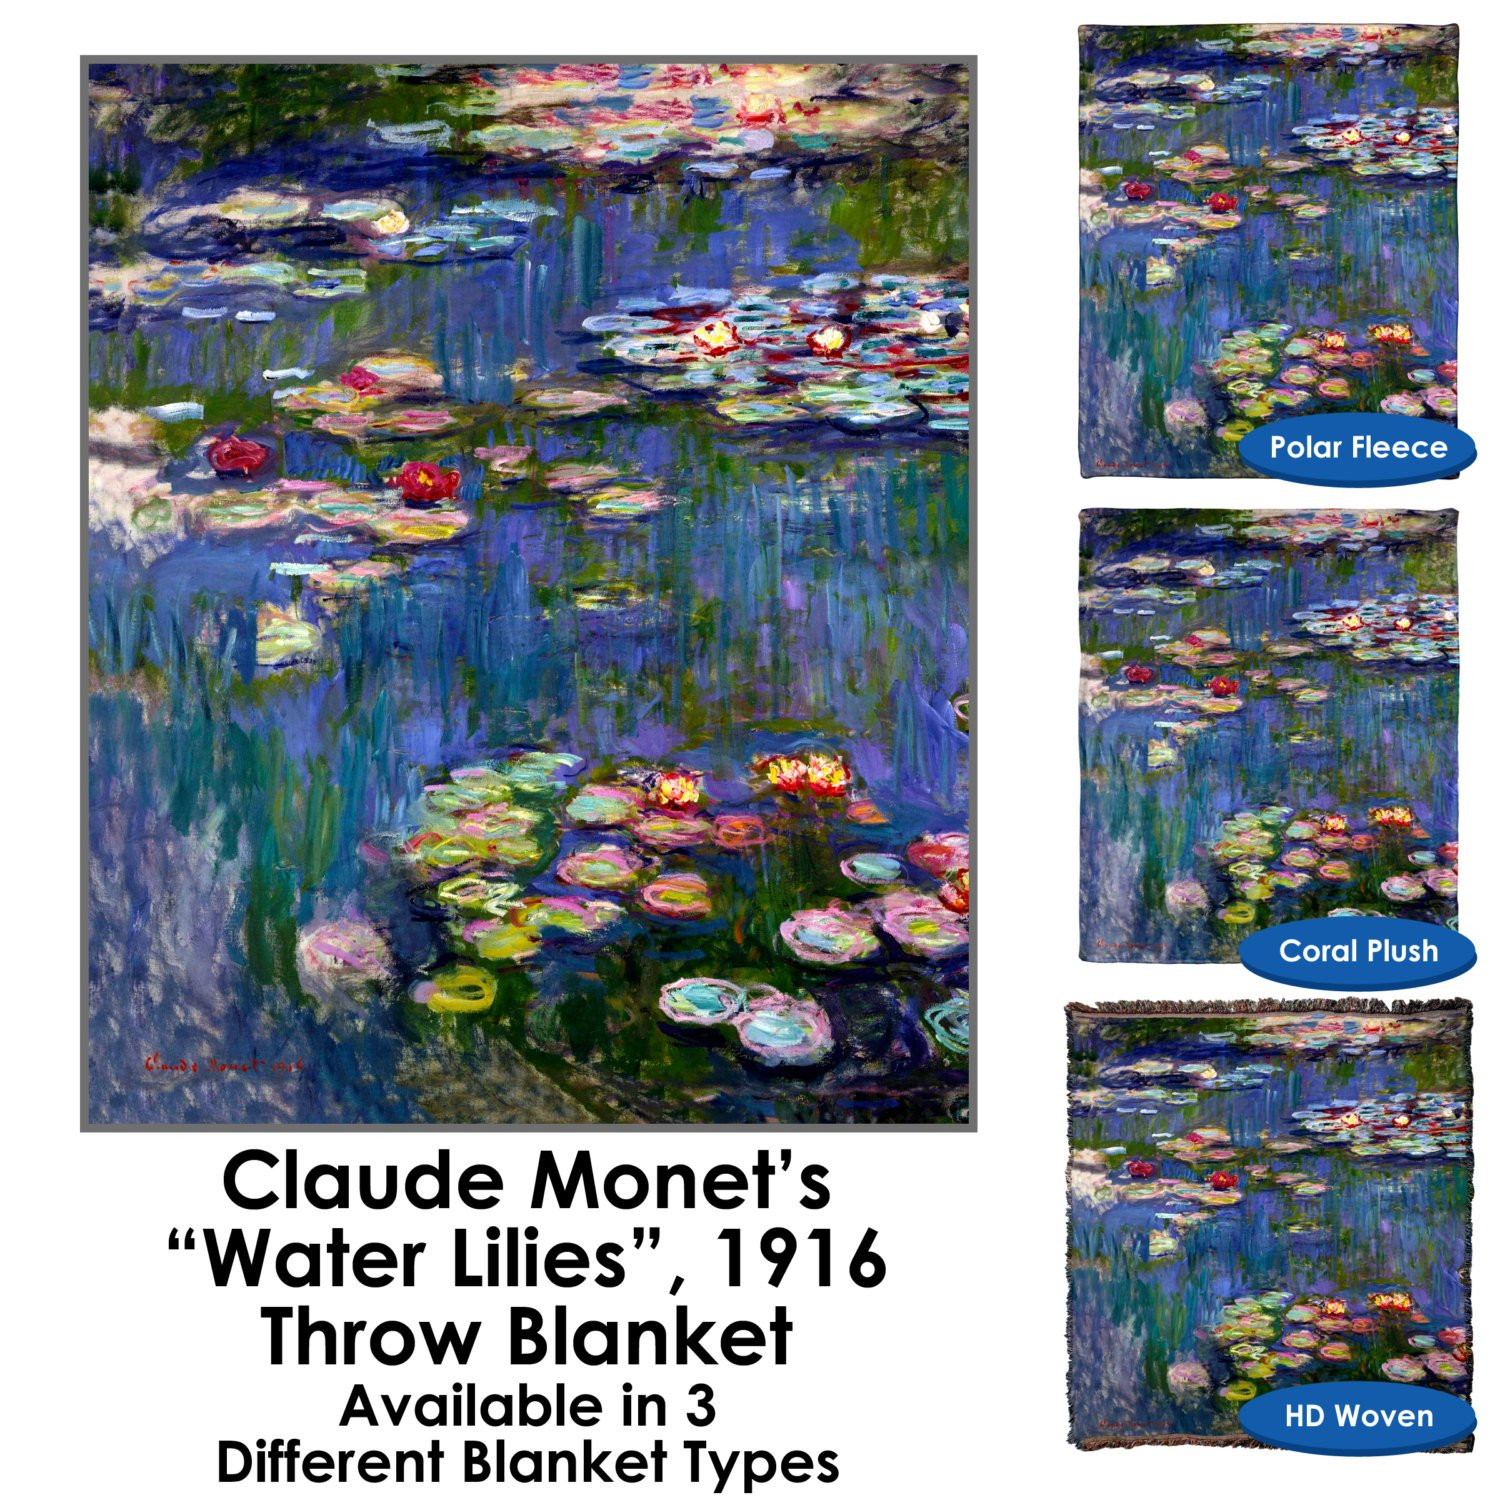 Water Lilies 1916 by Claude Monet Throw Blanket / Tapestry Wall Hanging - Standard Multi-color (Plush Fleece, 60''x80'')